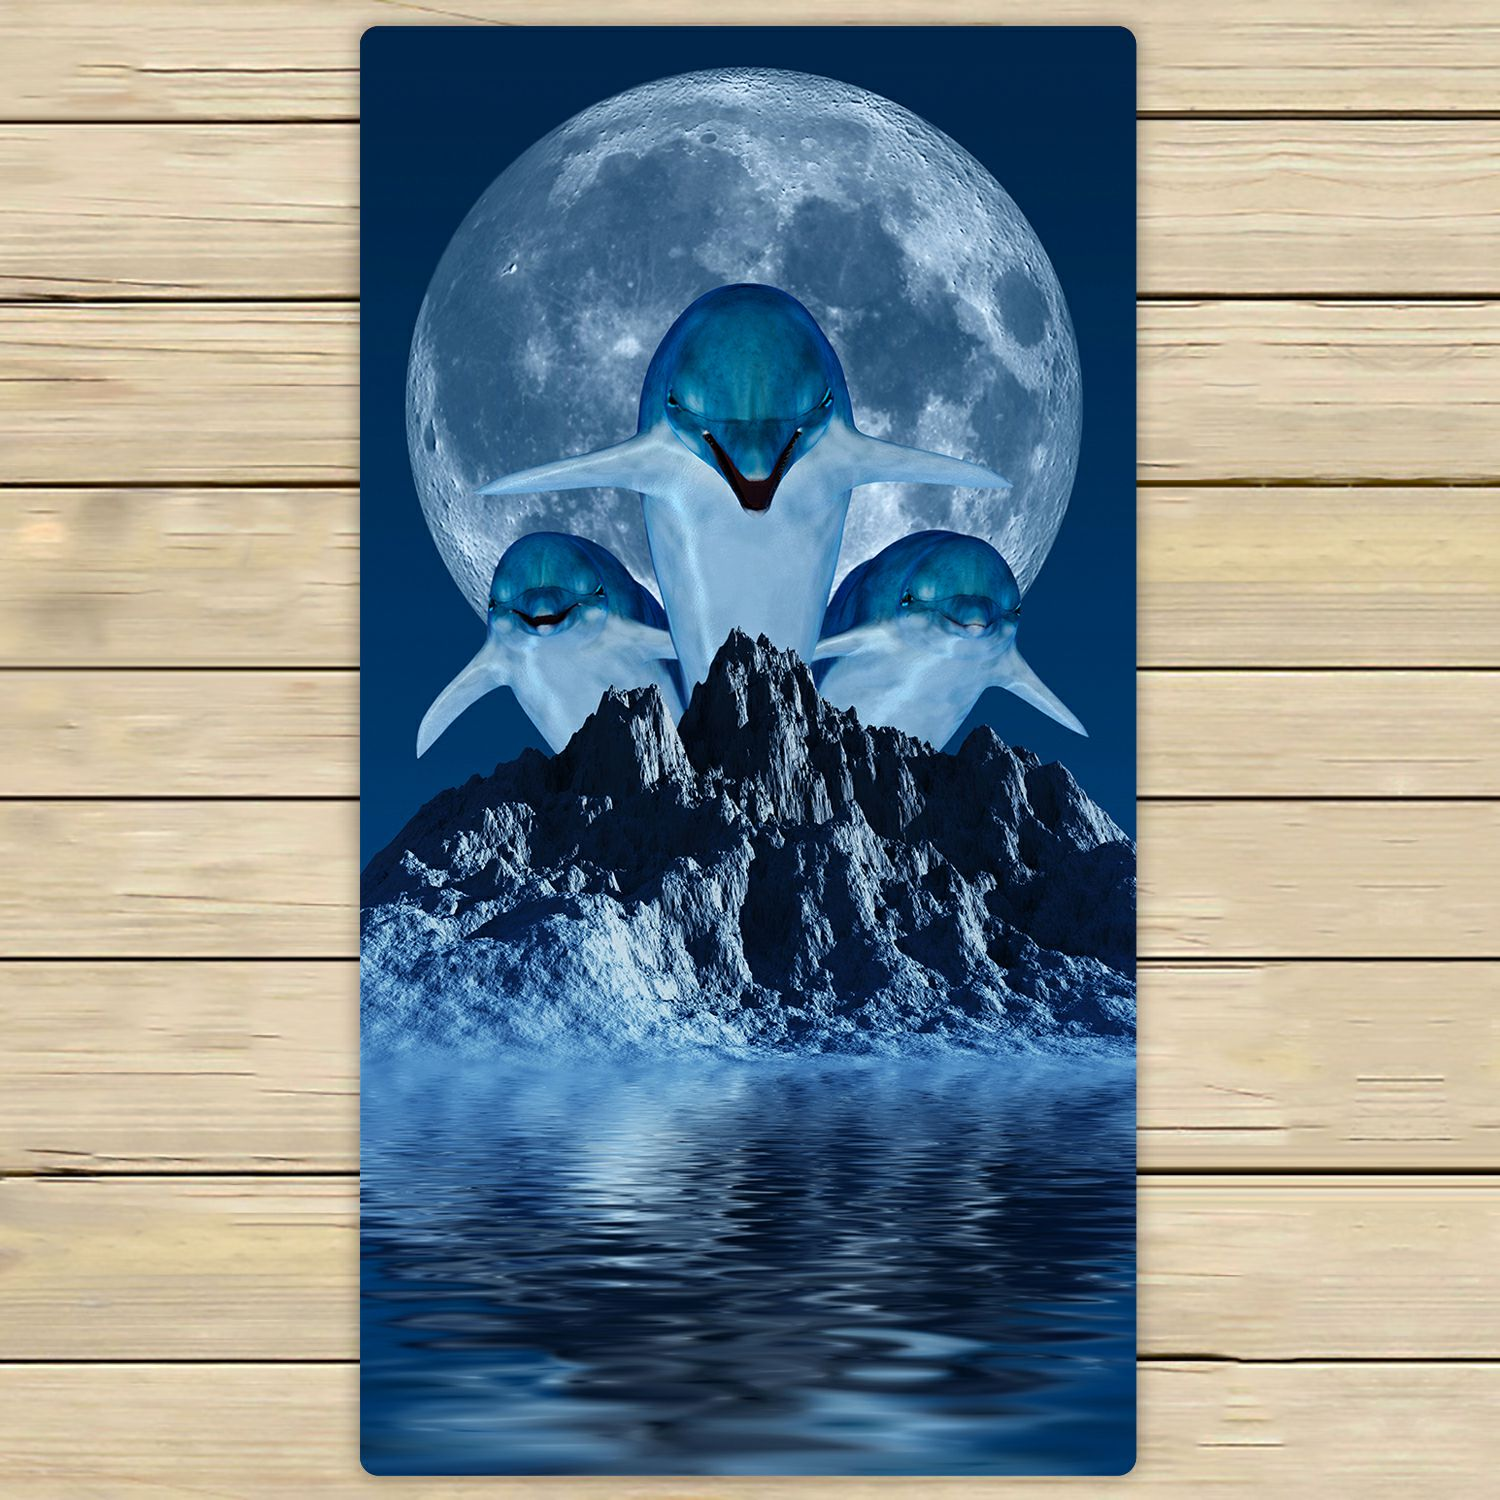 PHFZK Ocean Animal Towel, Dolphins with Moon Hand Towel Bath Bathroom Shower Towels Beach Towel 30x56 inches